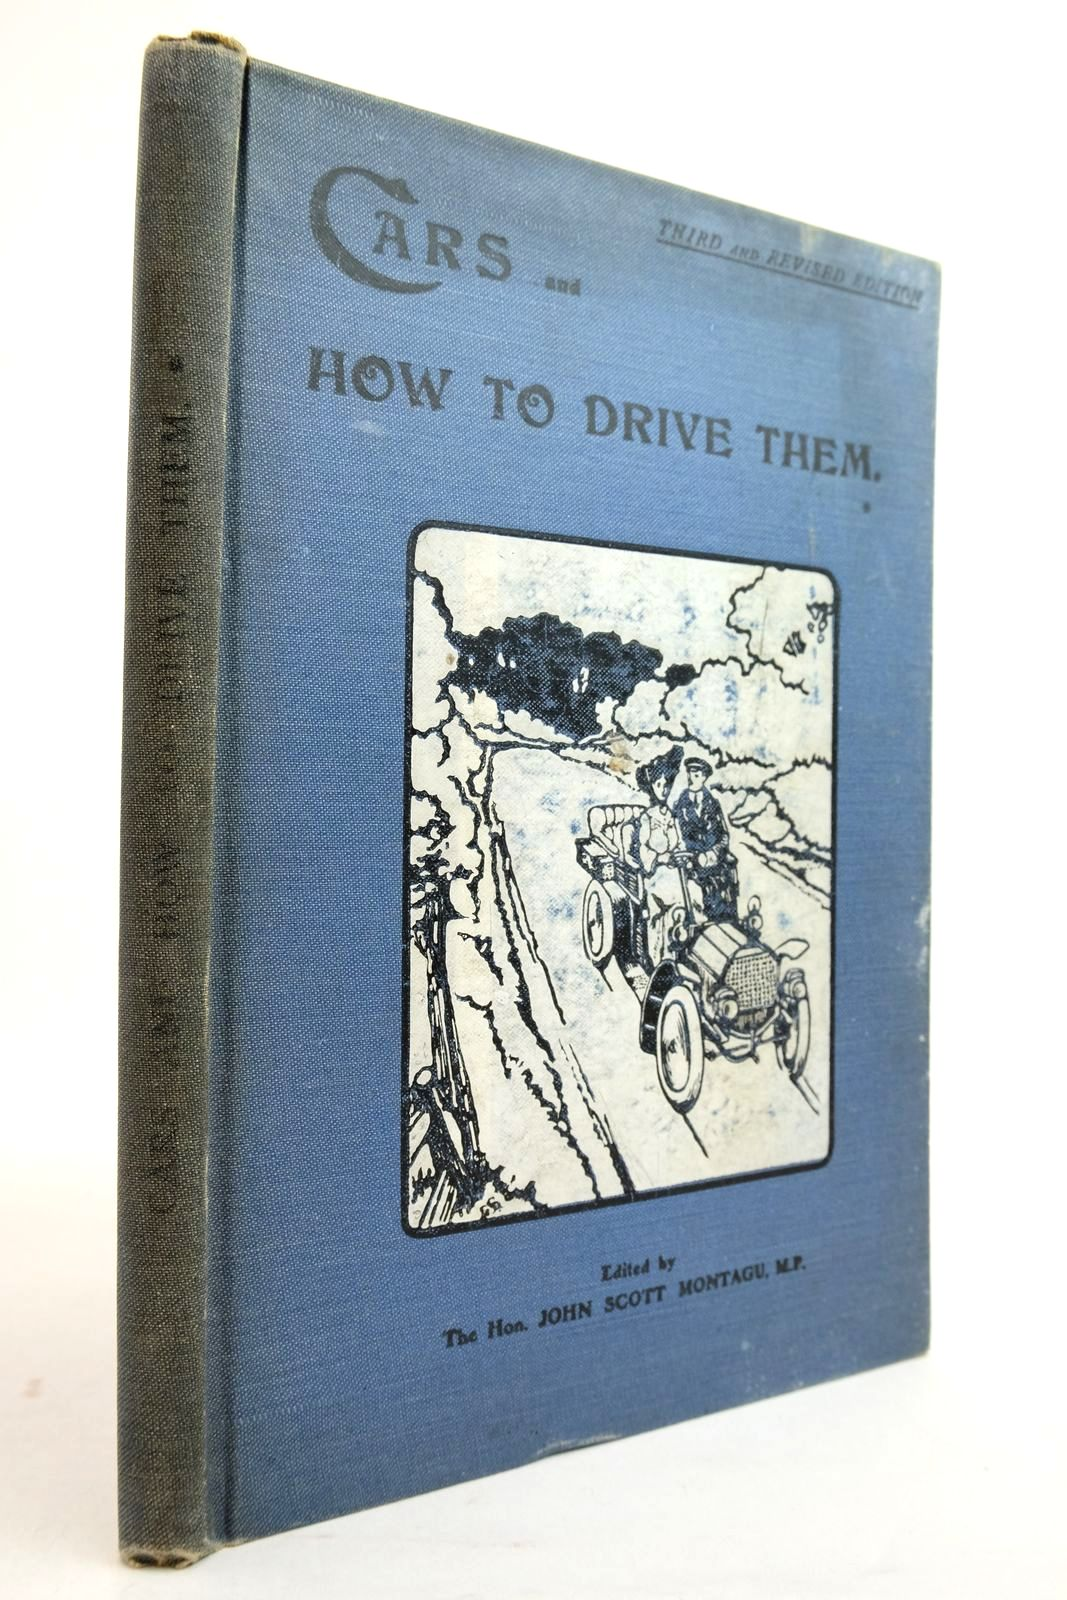 Photo of CARS AND HOW TO DRIVE THEM PART I written by Montagu, John Scott Hutton, J.E. et al, published by The Car Illustrated (STOCK CODE: 2134575)  for sale by Stella & Rose's Books